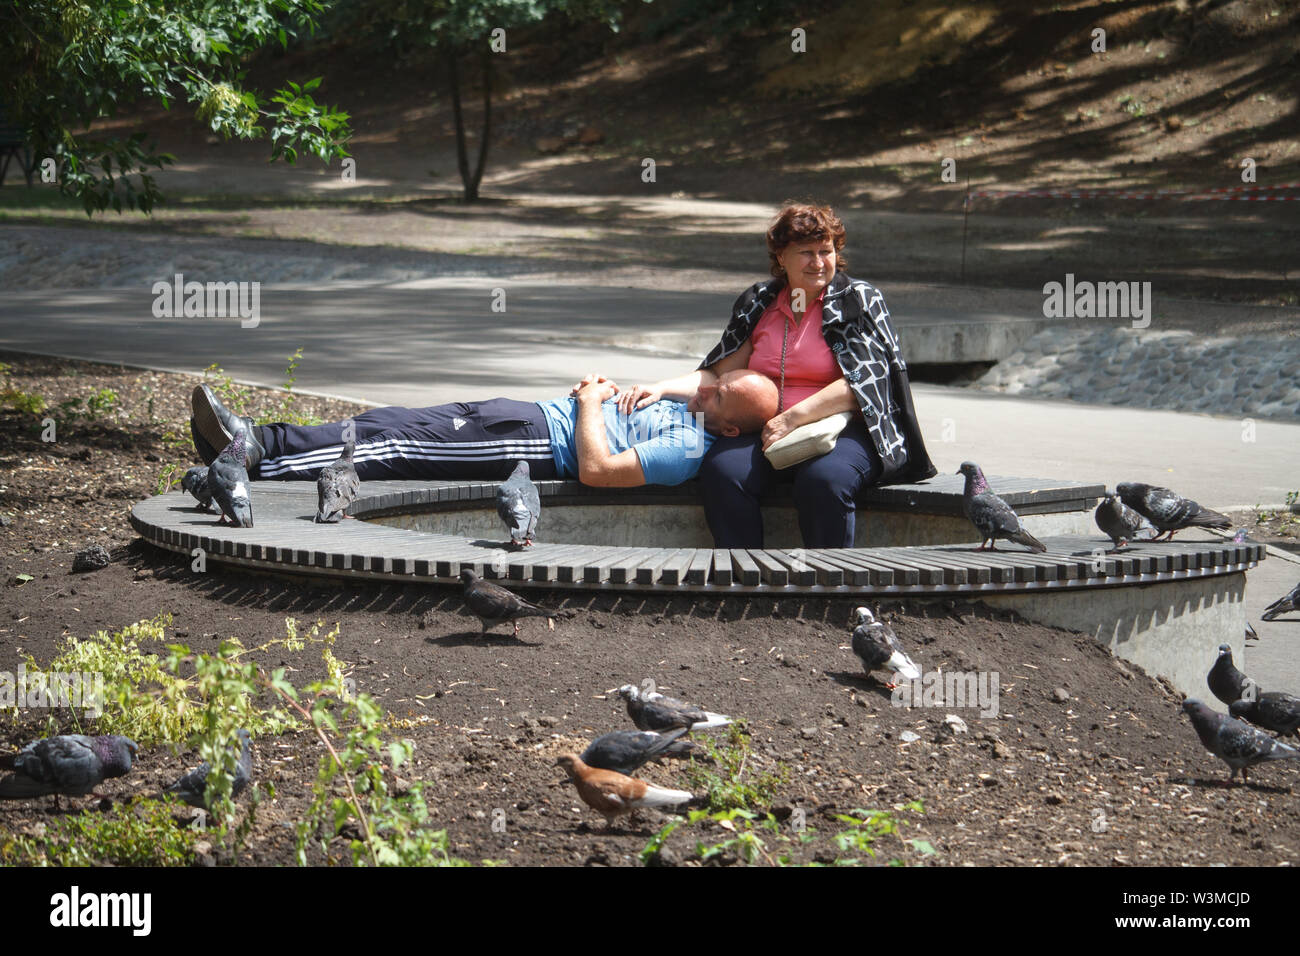 Kharkiv, Ukraine - June 30, 2019: An elderly man and woman are resting on a bench in a city park, a man lies with his head in his hands at a woman - Stock Image